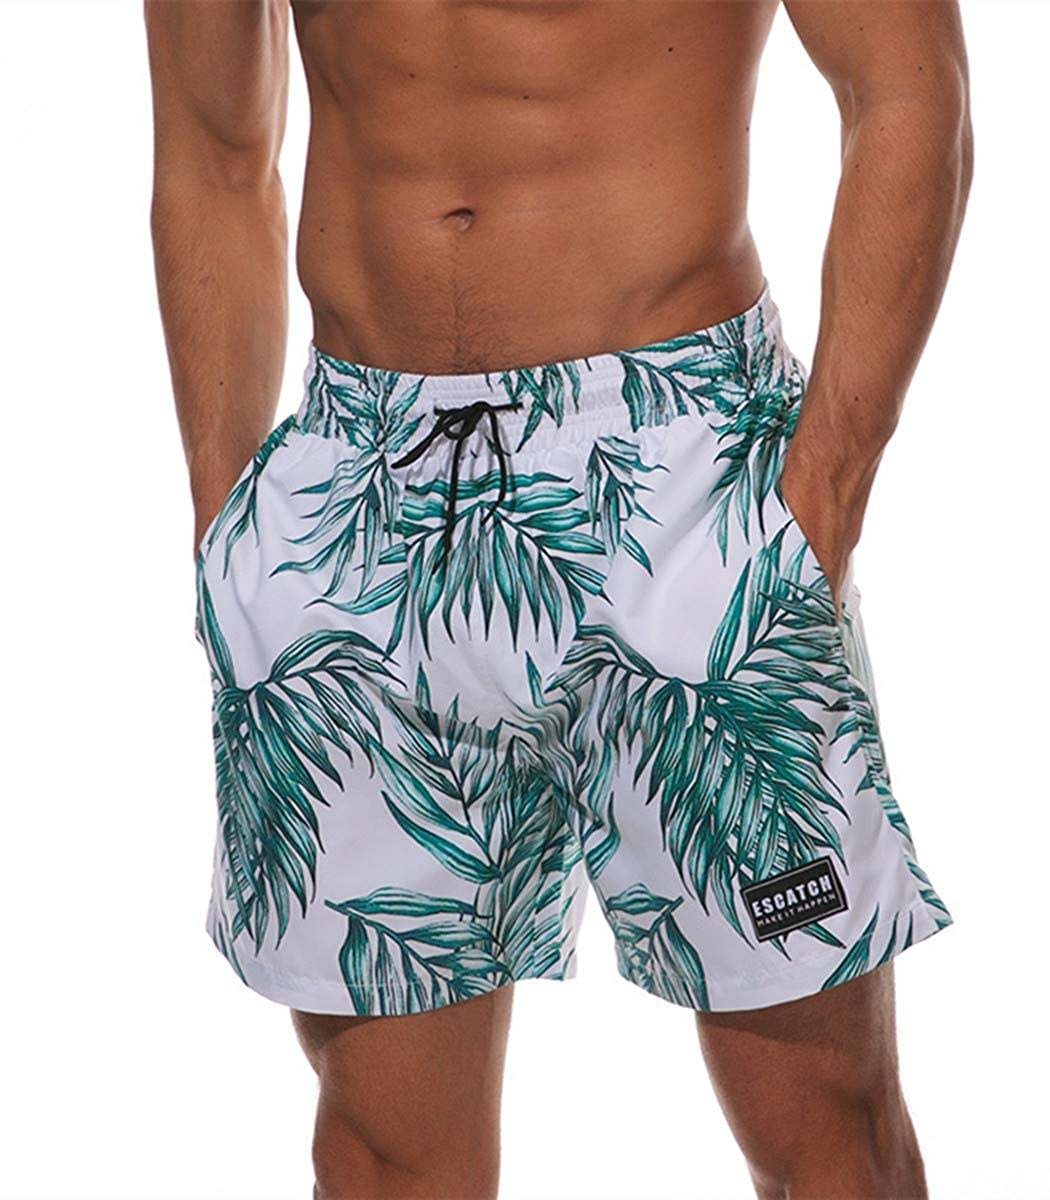 ESCATCH Swim Trunks for Men Summer Quick Dry Large Pocket Beach Shorts Flamingo Print